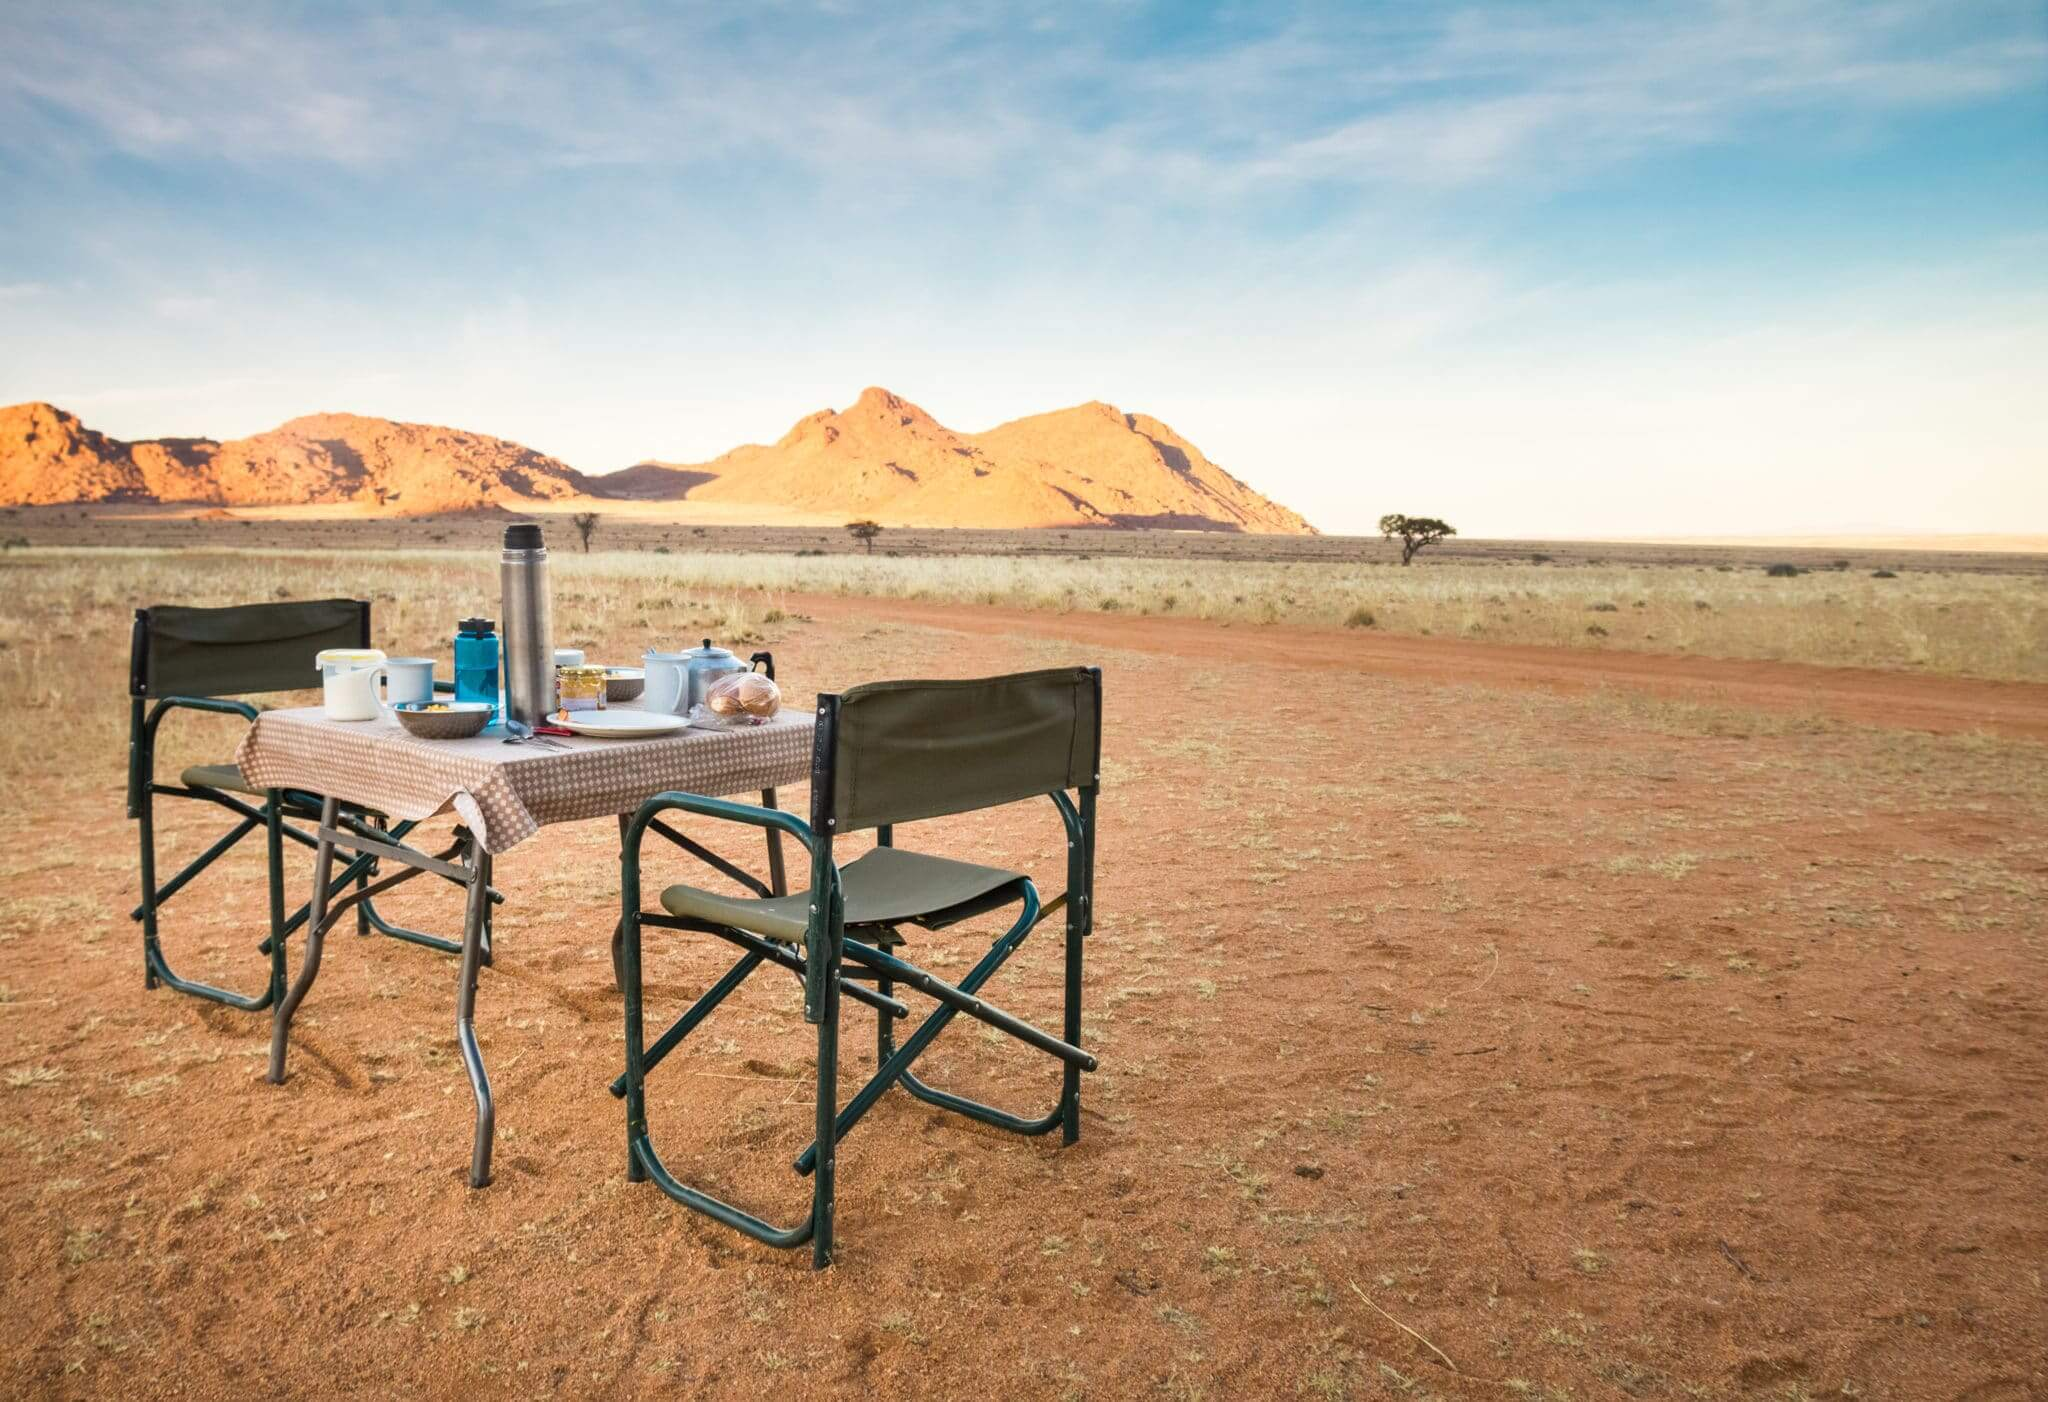 Camping table and chairs in the desert at sunrise